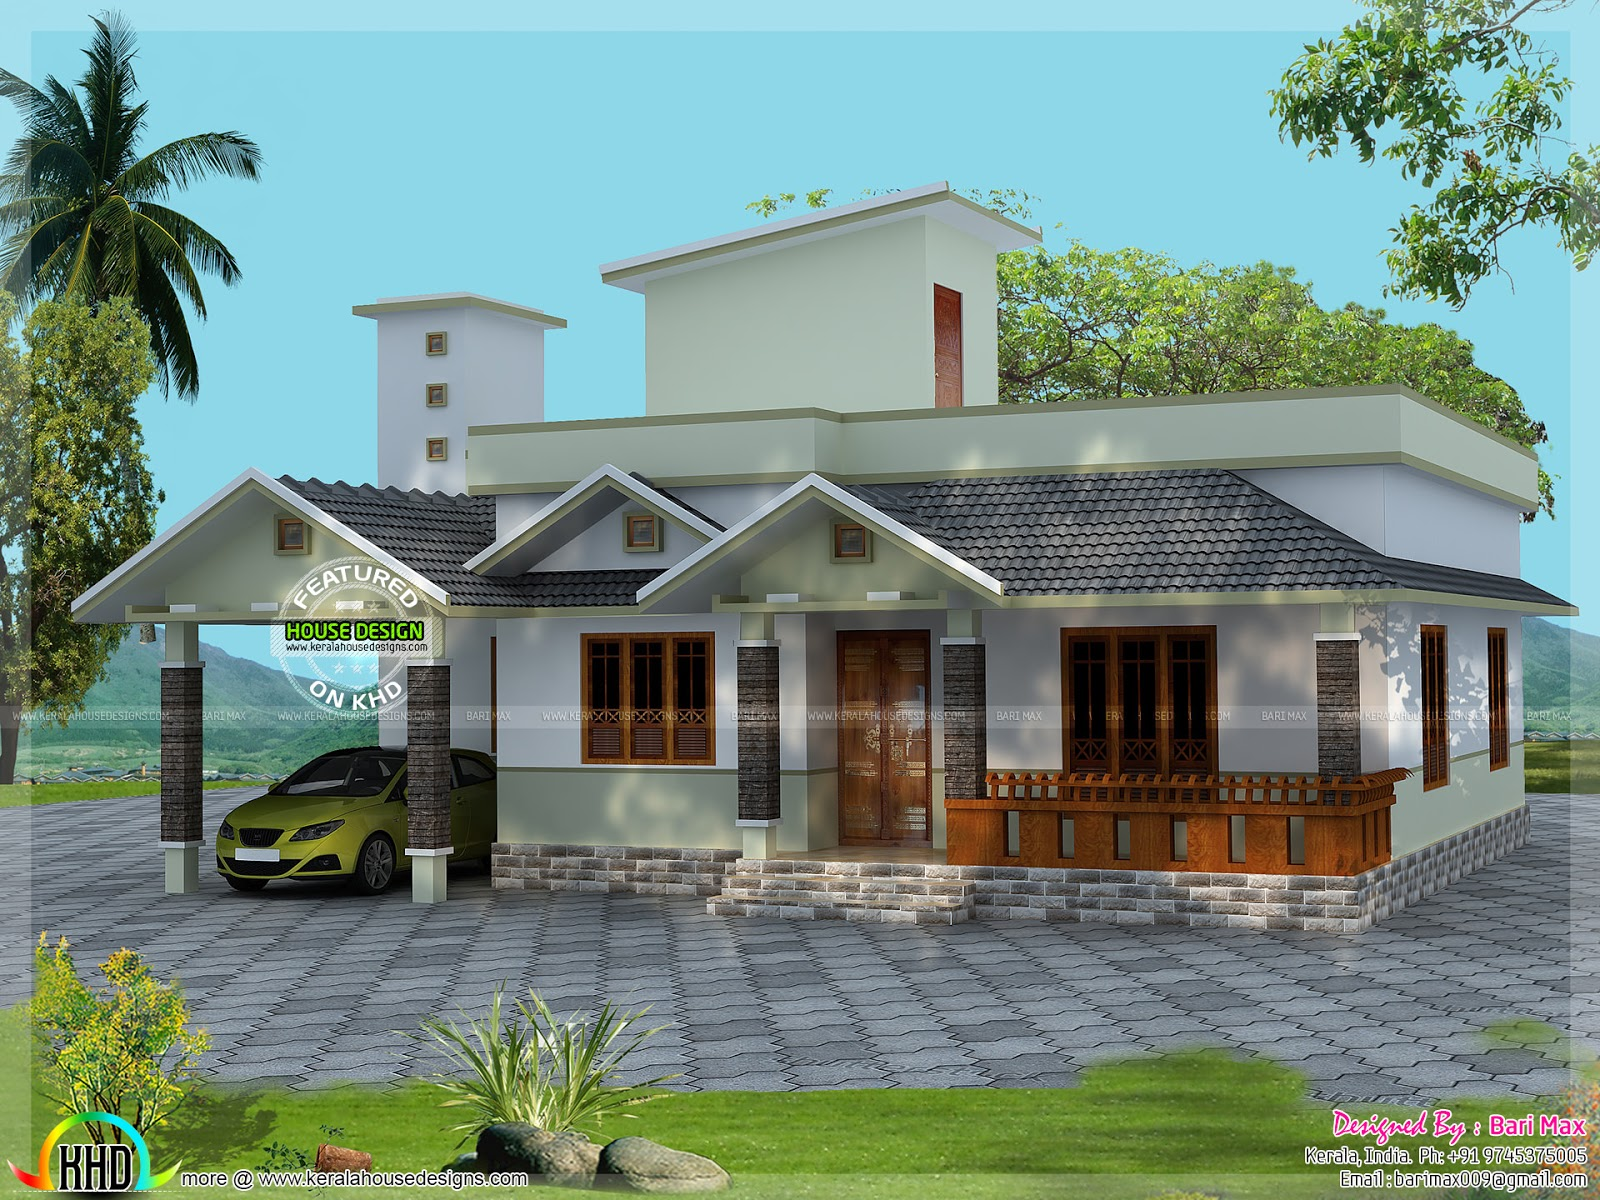 Low budget 2 bedroom home kerala home design and floor plans Low budget house plans